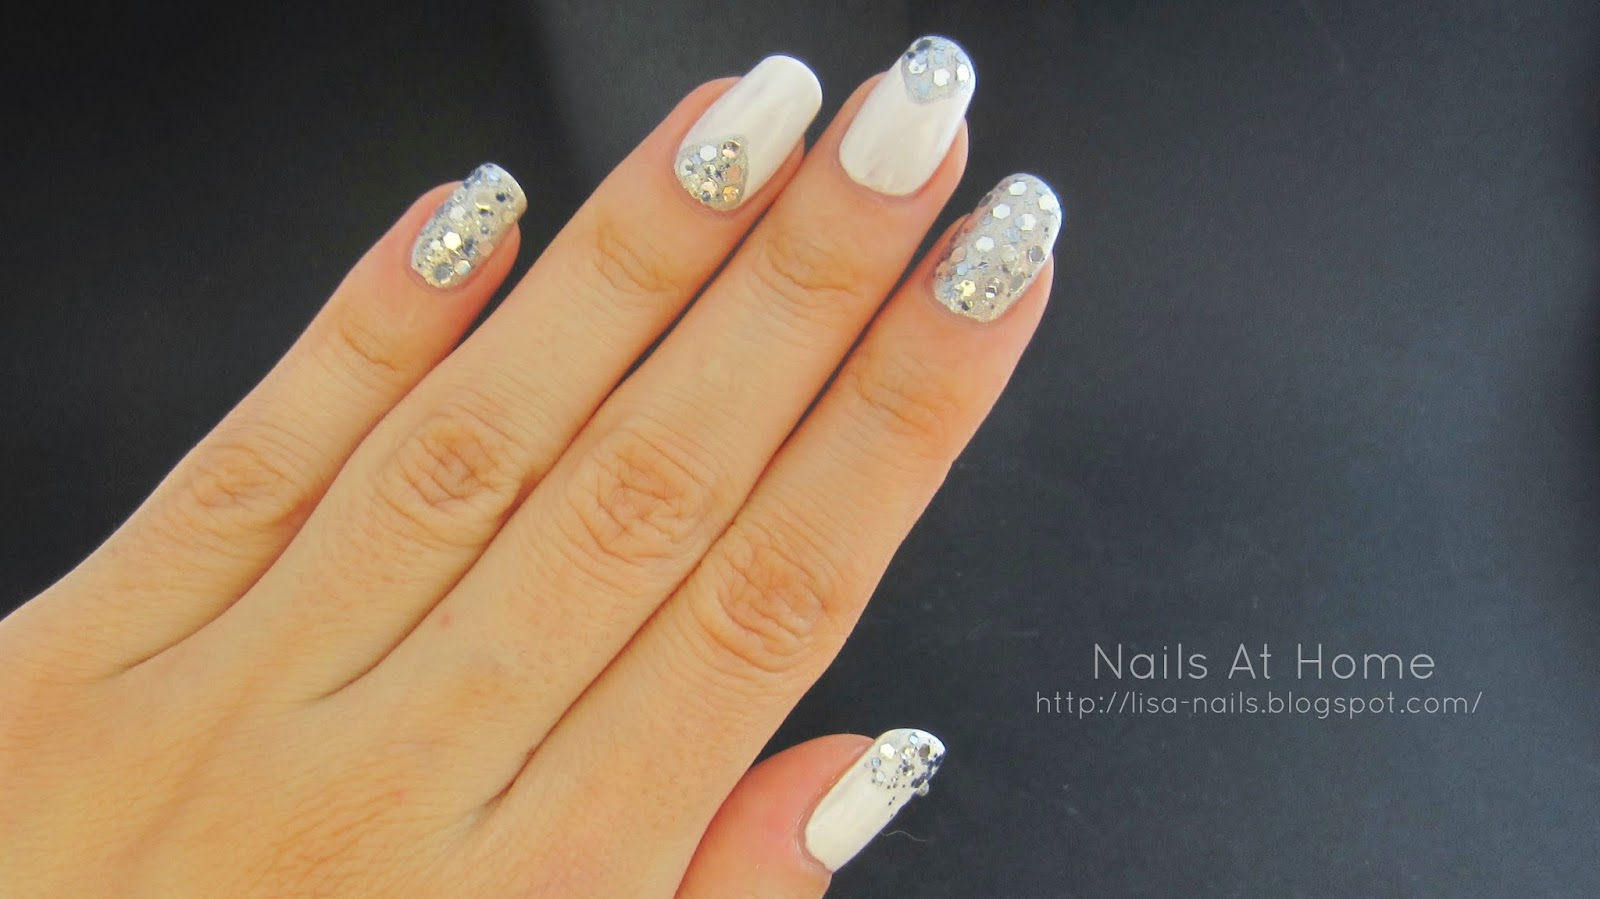 Celeb Nails | 2NE1's Falling In Love - Nails At Home Dara Falling In Love Nails